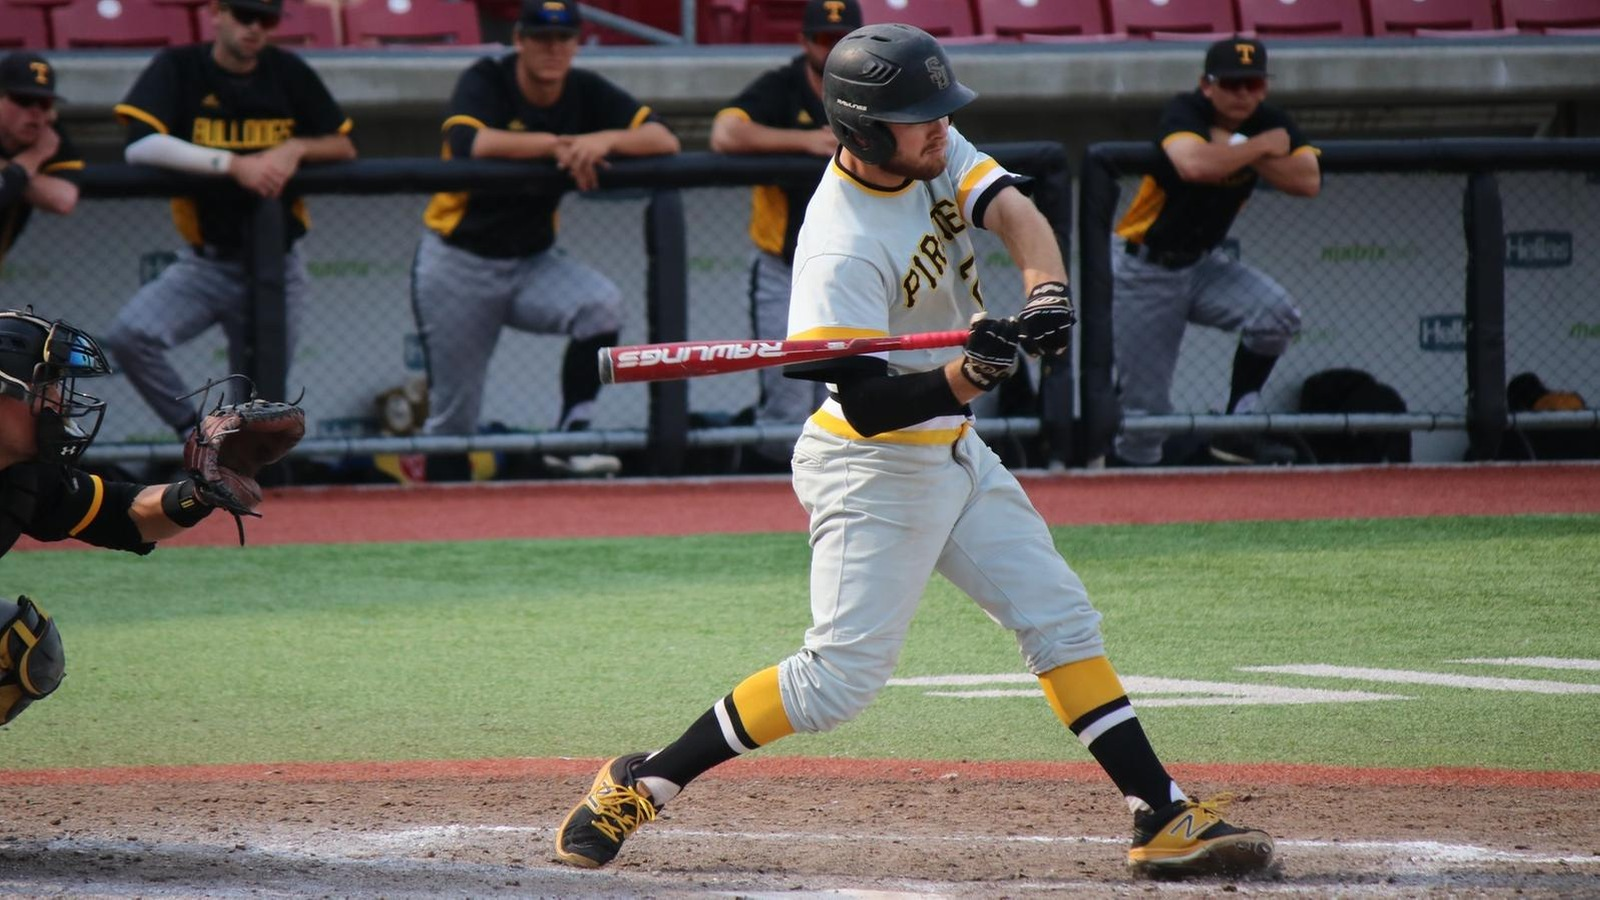 Pirates fall short against Trinity in elimination game, 4-3